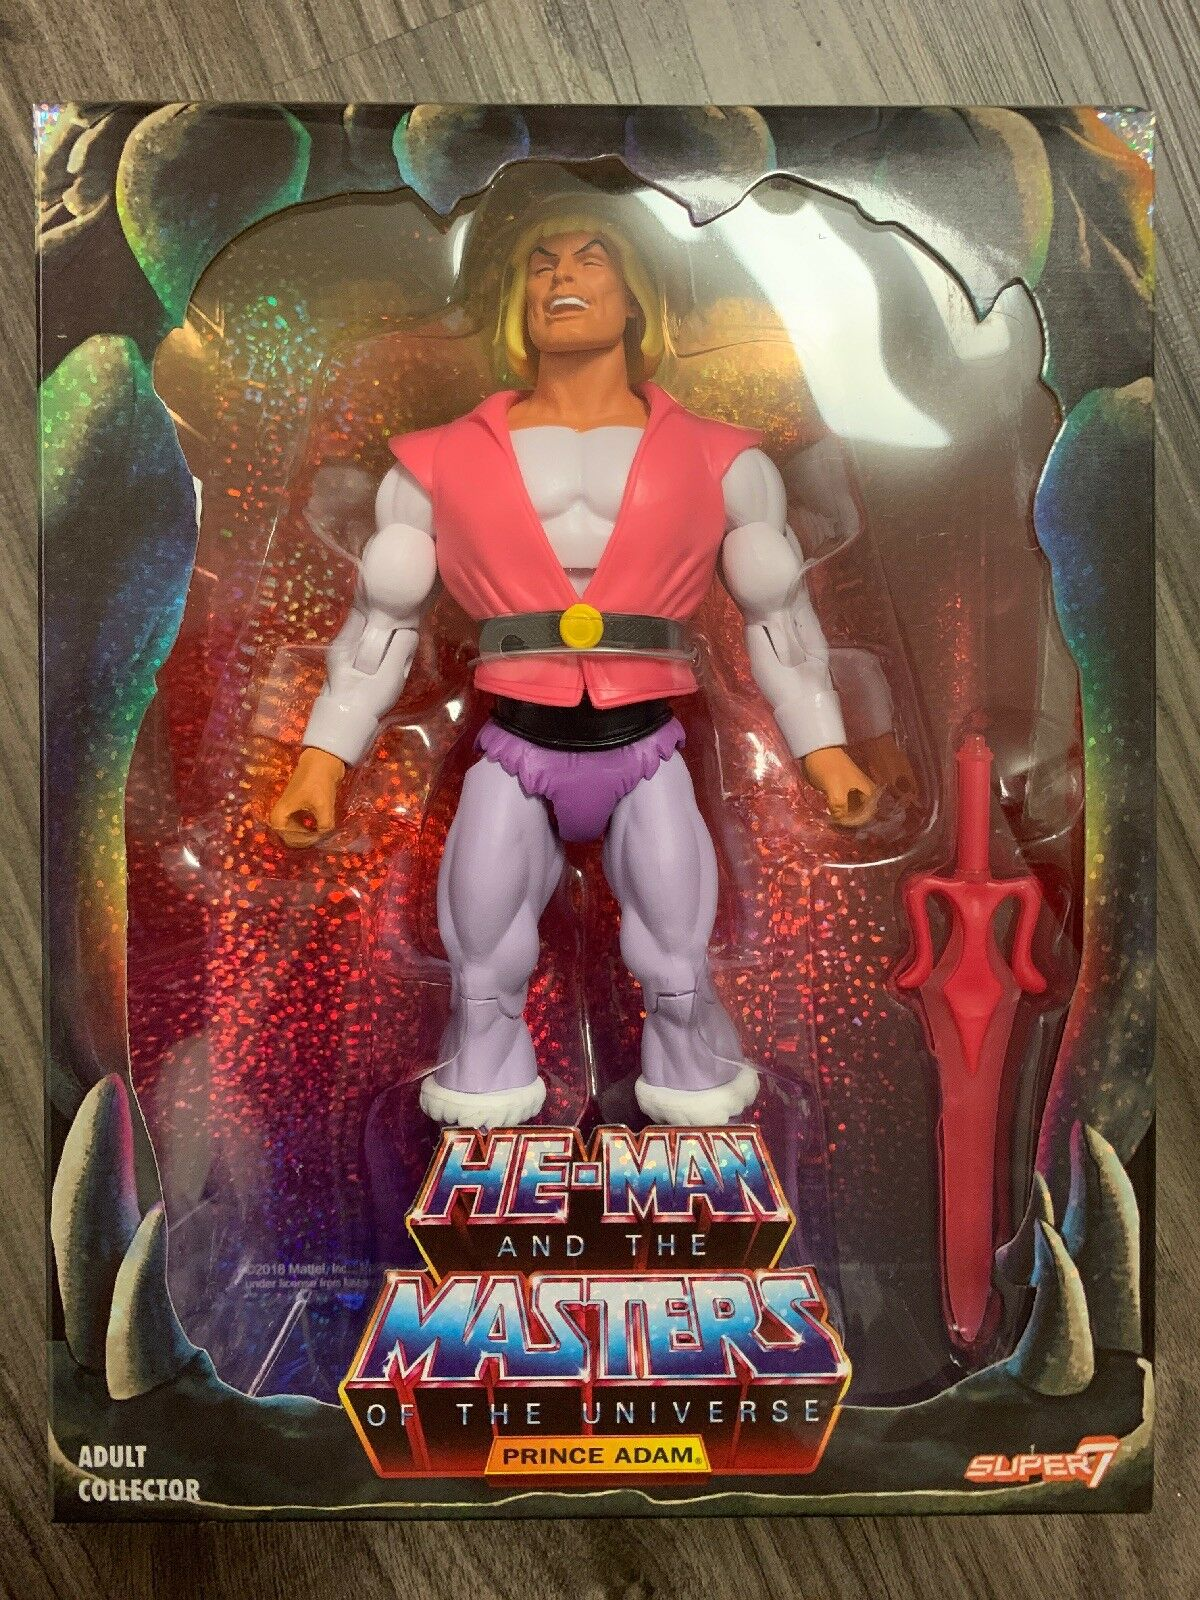 SDCC 2018 Super7 Exclusive MOTU Classics Laughing Prince Adam He-Man Filmation